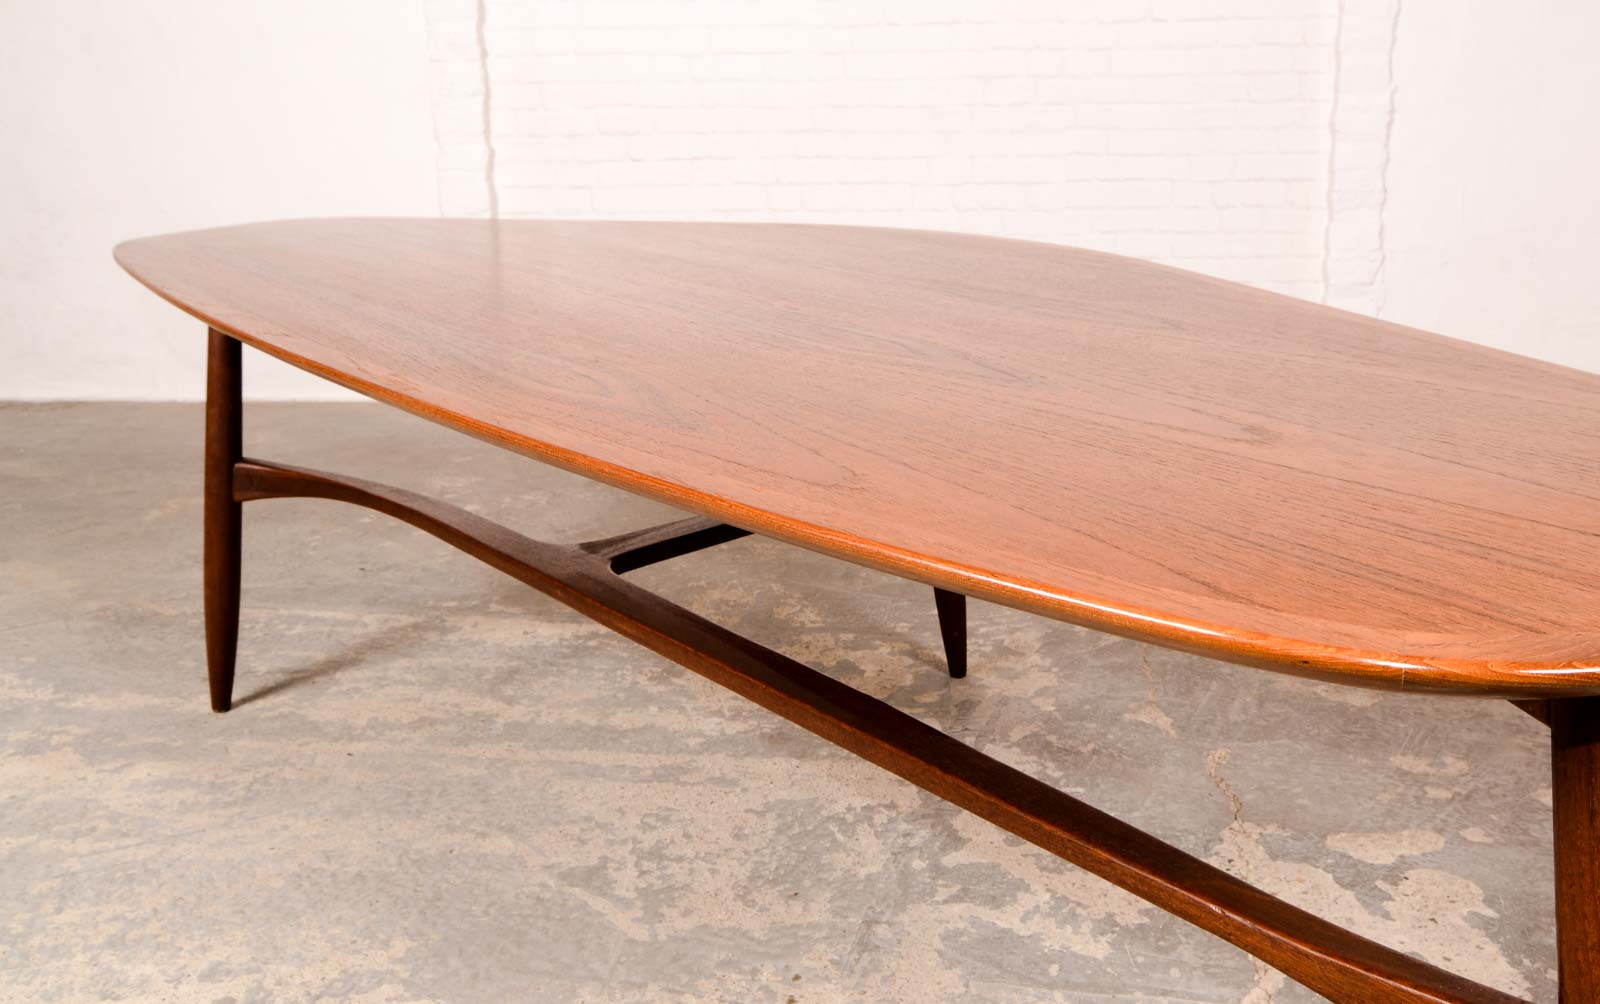 Mid Century Free Form Kidney Shaped Coffee Table Designed By Svante Skogh